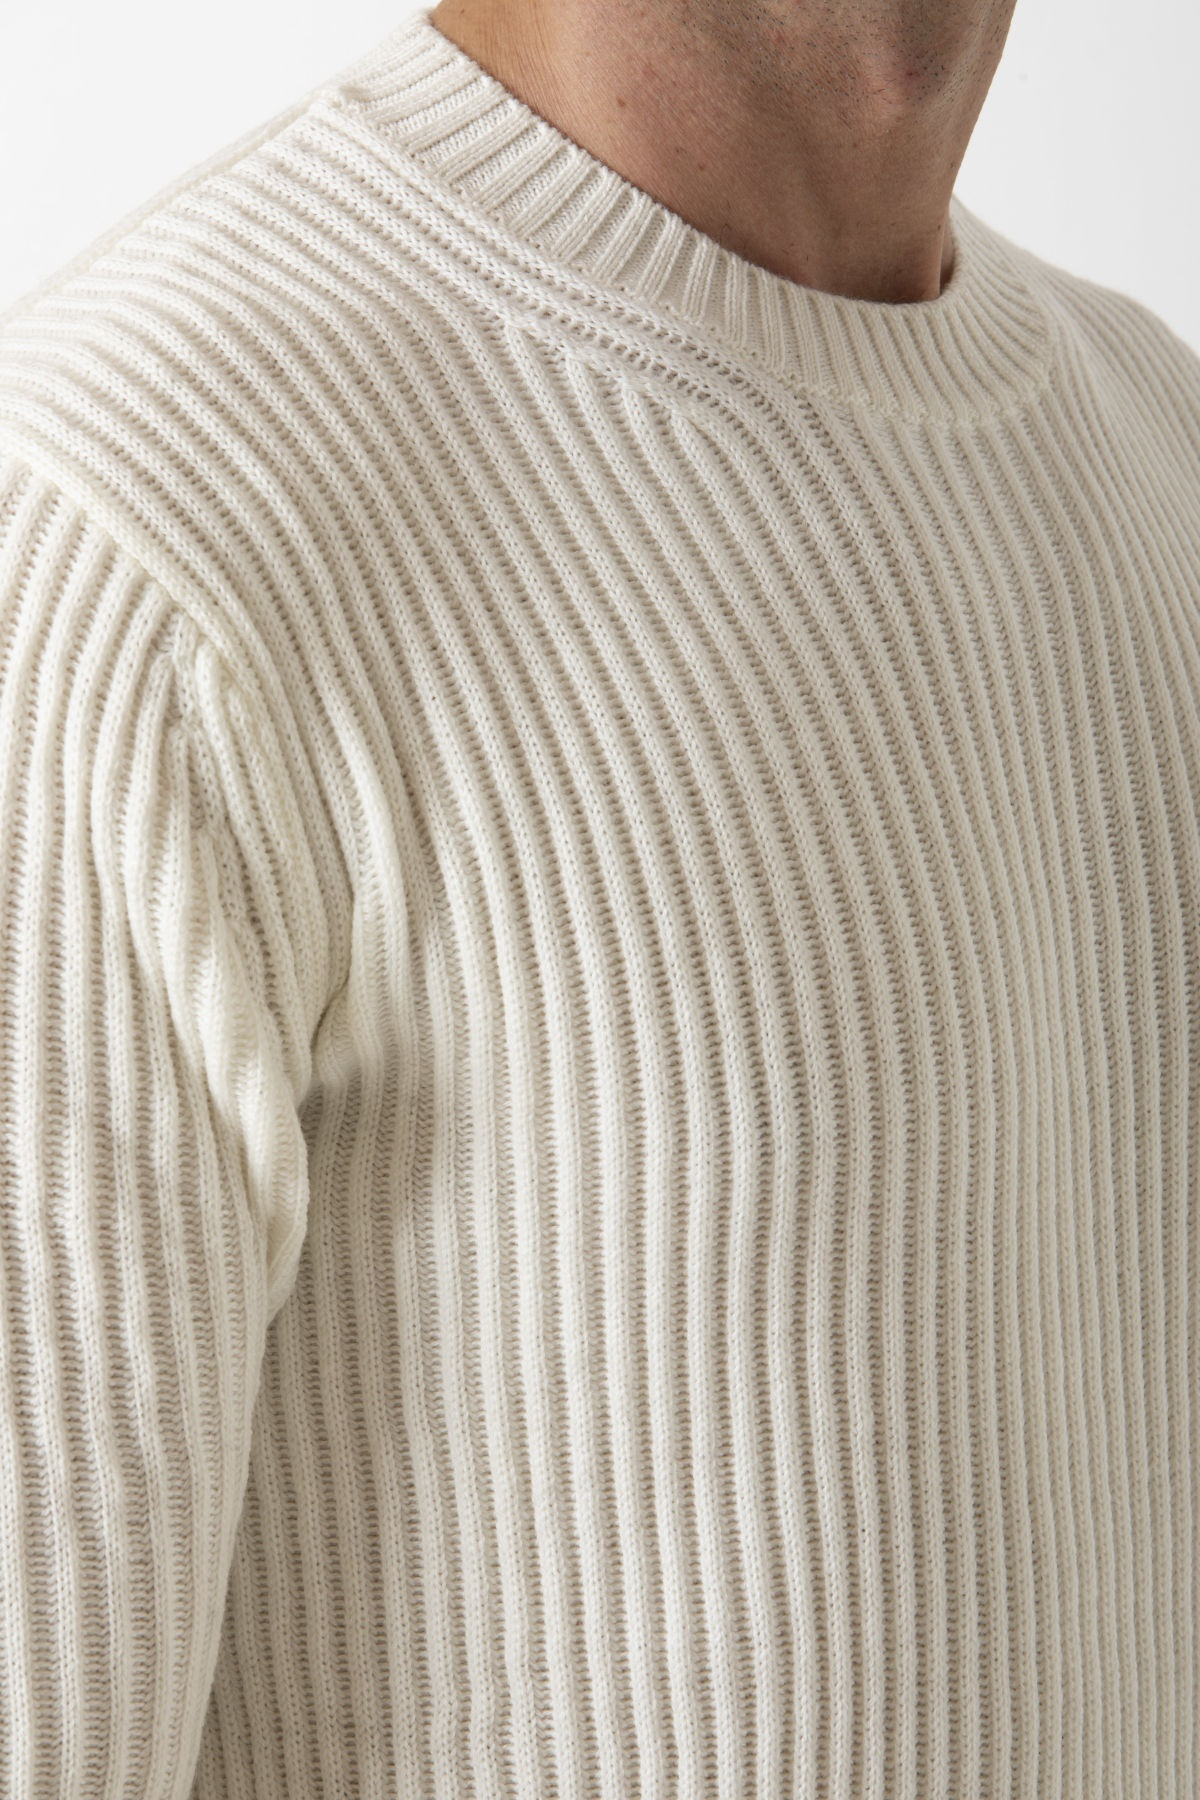 Pullover for man FILIPPO DE LAURENTIIS F/W 19-20